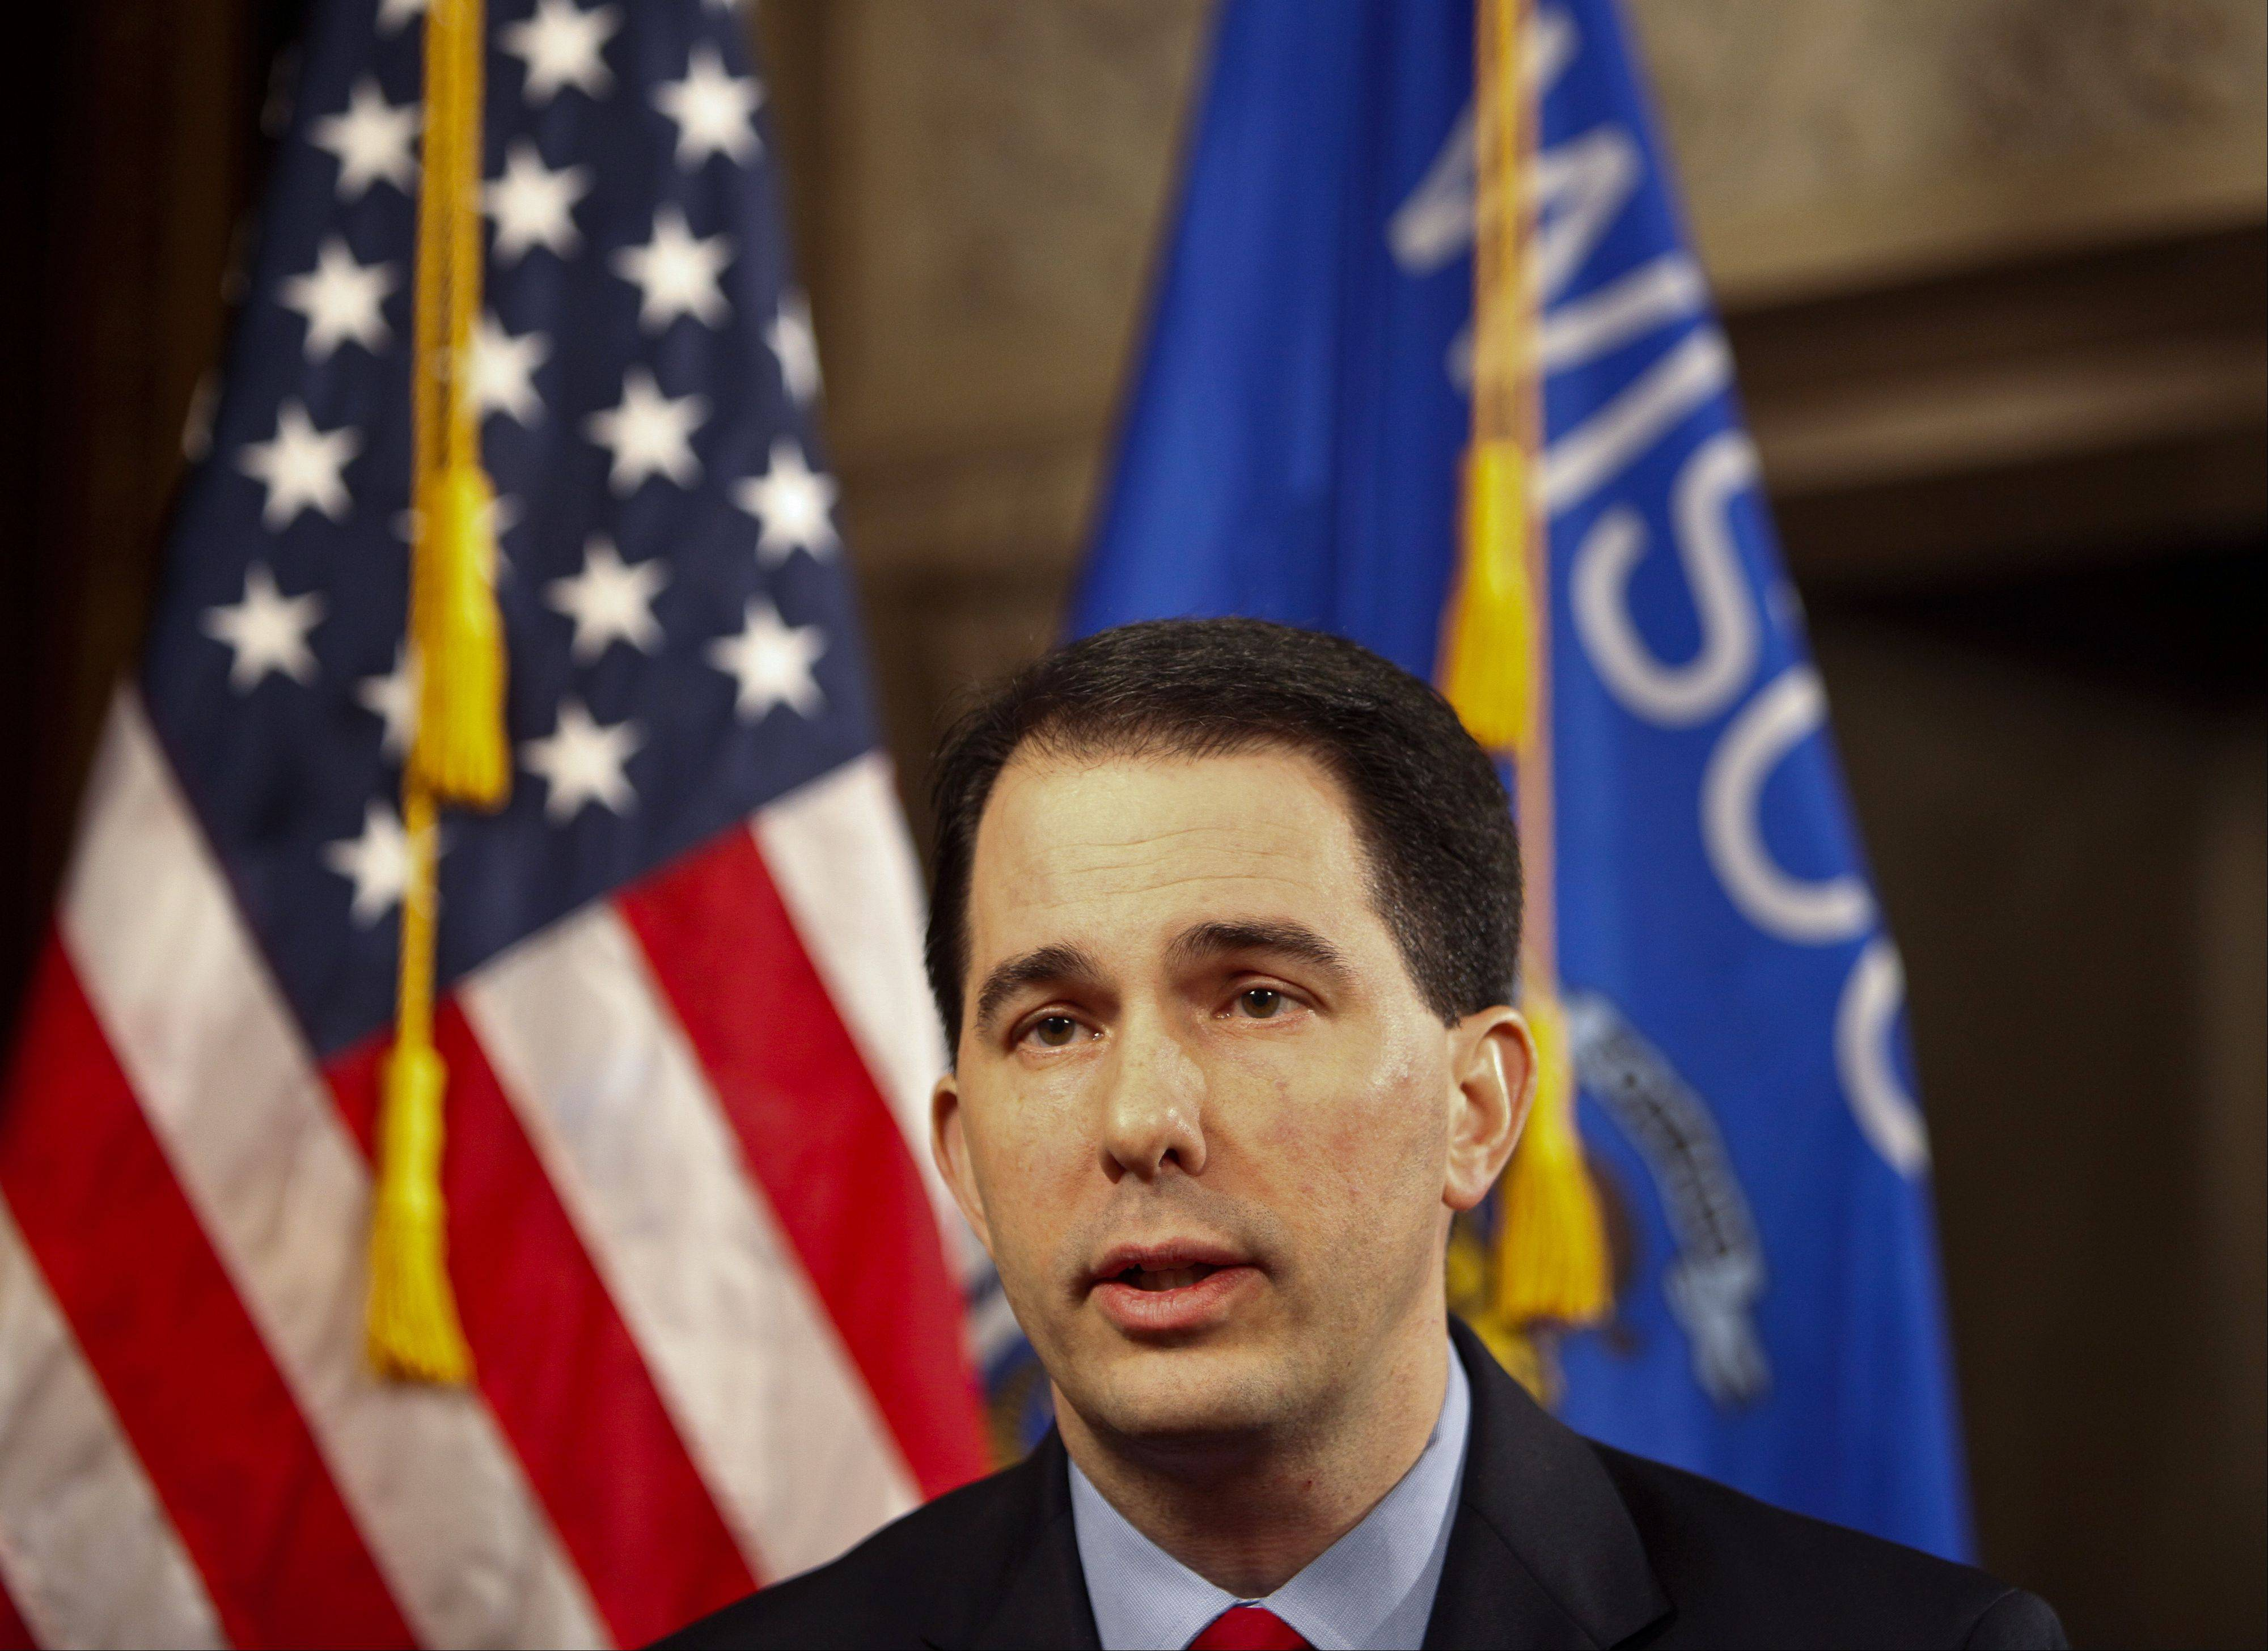 Wisconsin Gov. Scott Walker is praising fellow Wisconsin Republican Paul Ryan for the congressman's role in broking a bipartisan budget bill that's been blasted a by number of conservatives.